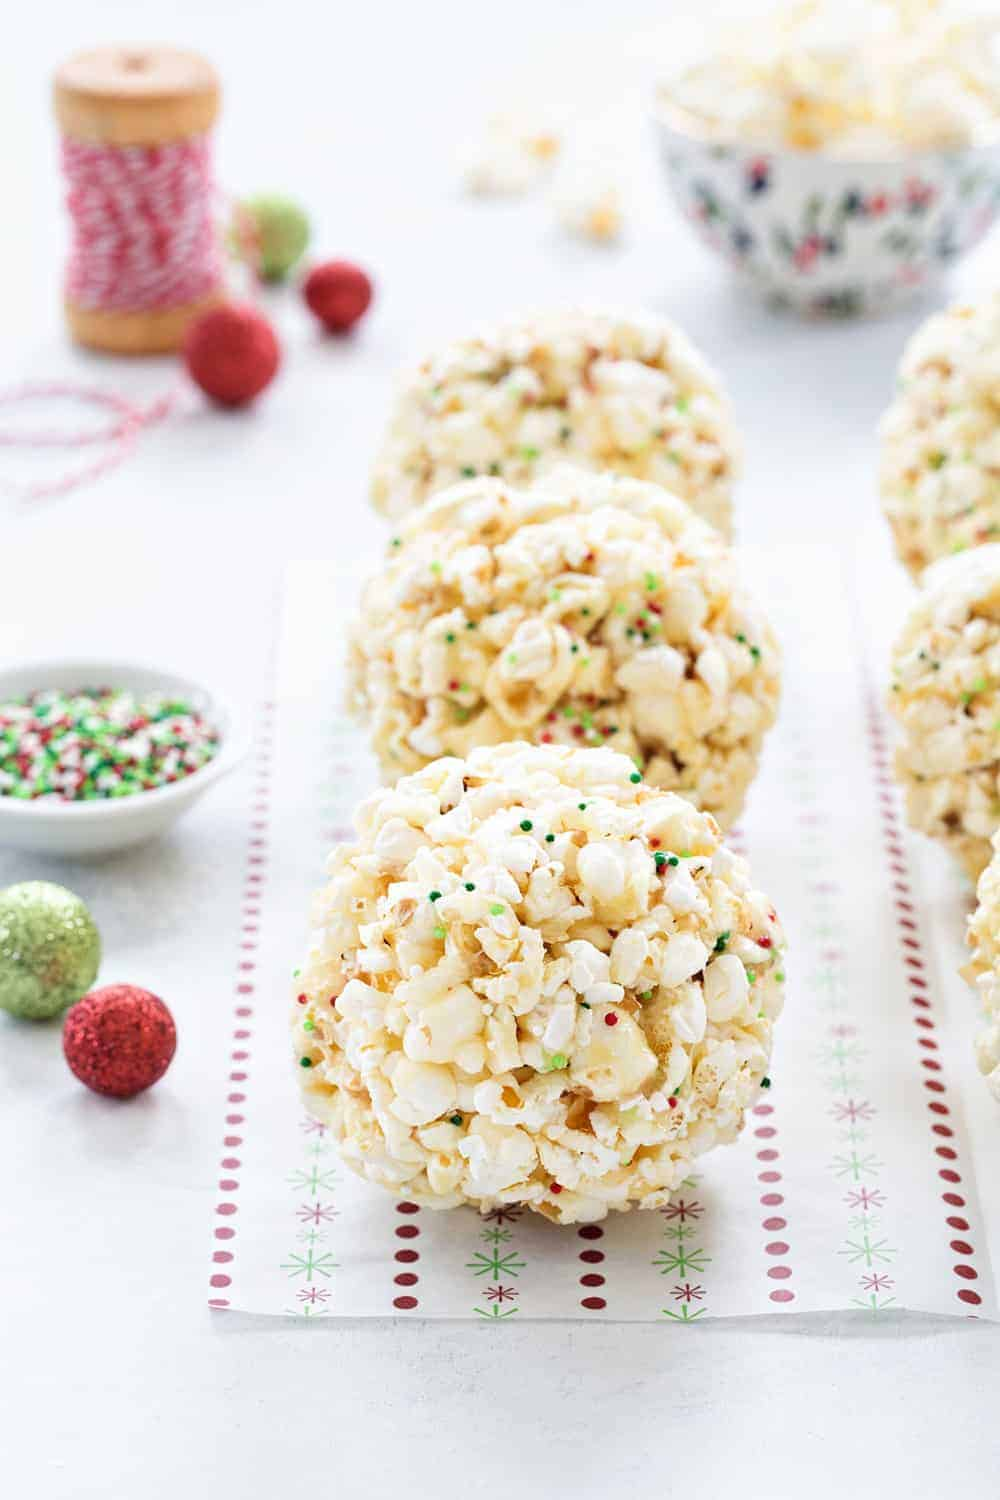 Popcorn Balls are a fun and delicious way to celebrate the season. This simple recipe is a great base for so many flavor combinations - the possibilities are endless!